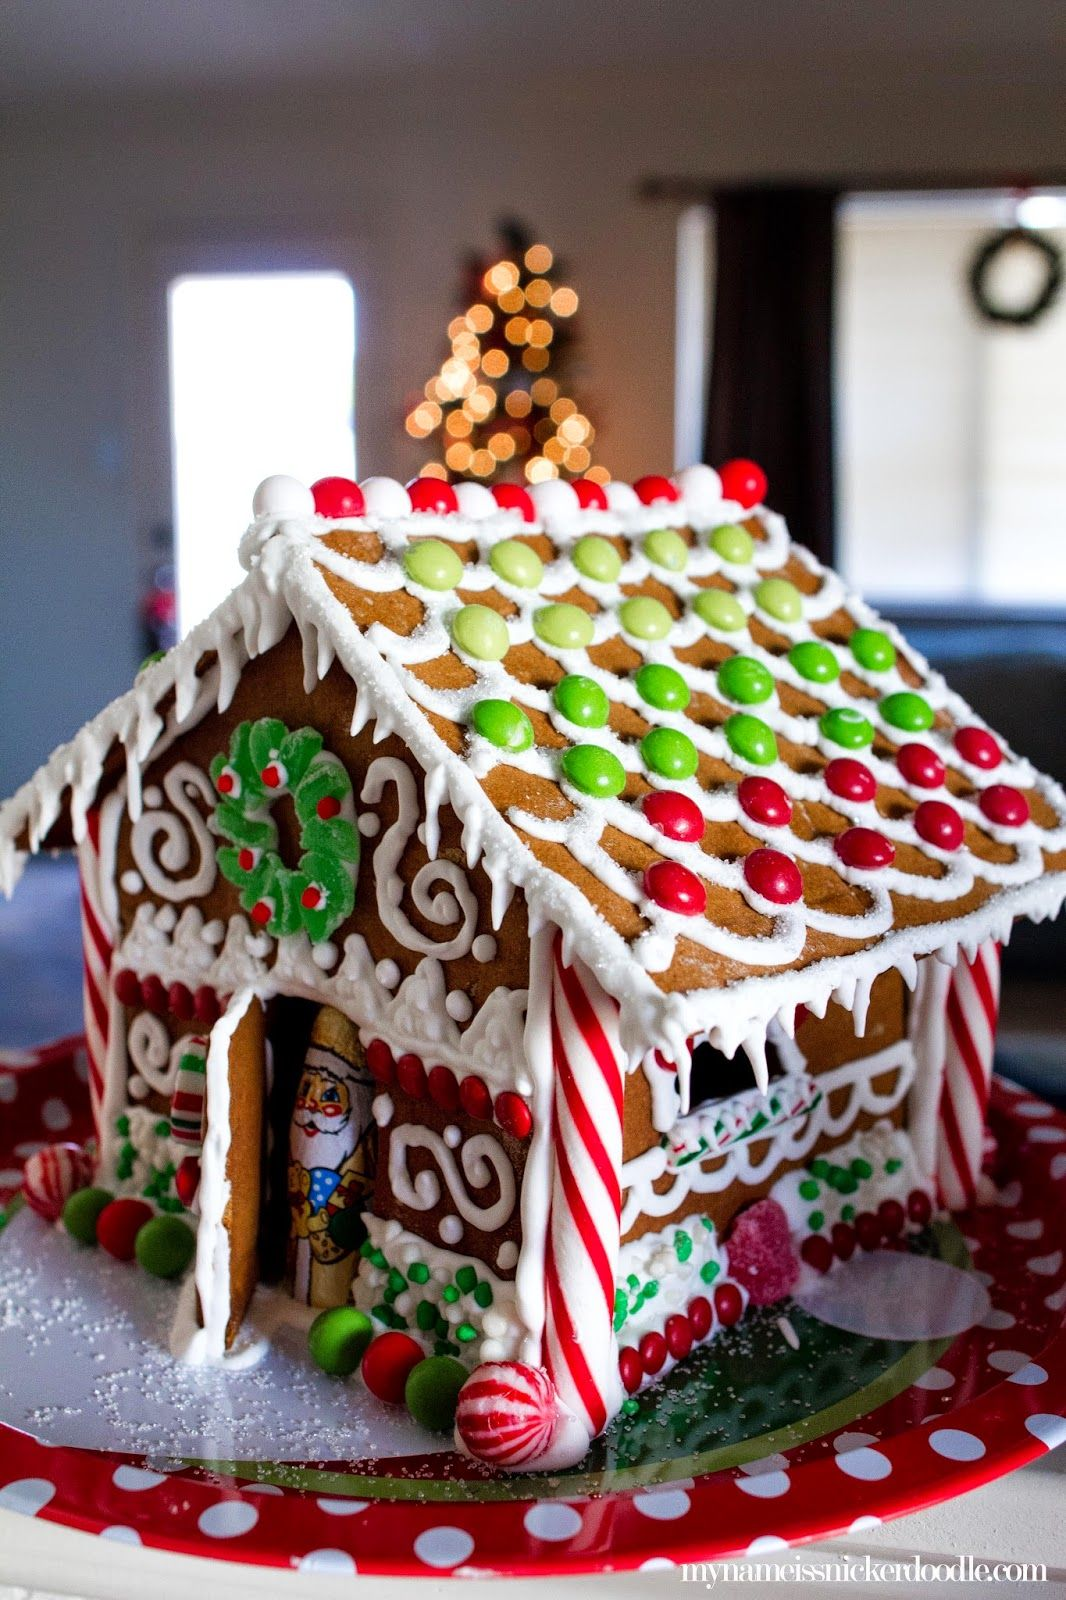 Gingerbread House Ideas Recipe By My Name Is Snickerdoodle Gingerbread House Decorations Gingerbread House Designs Christmas Gingerbread House